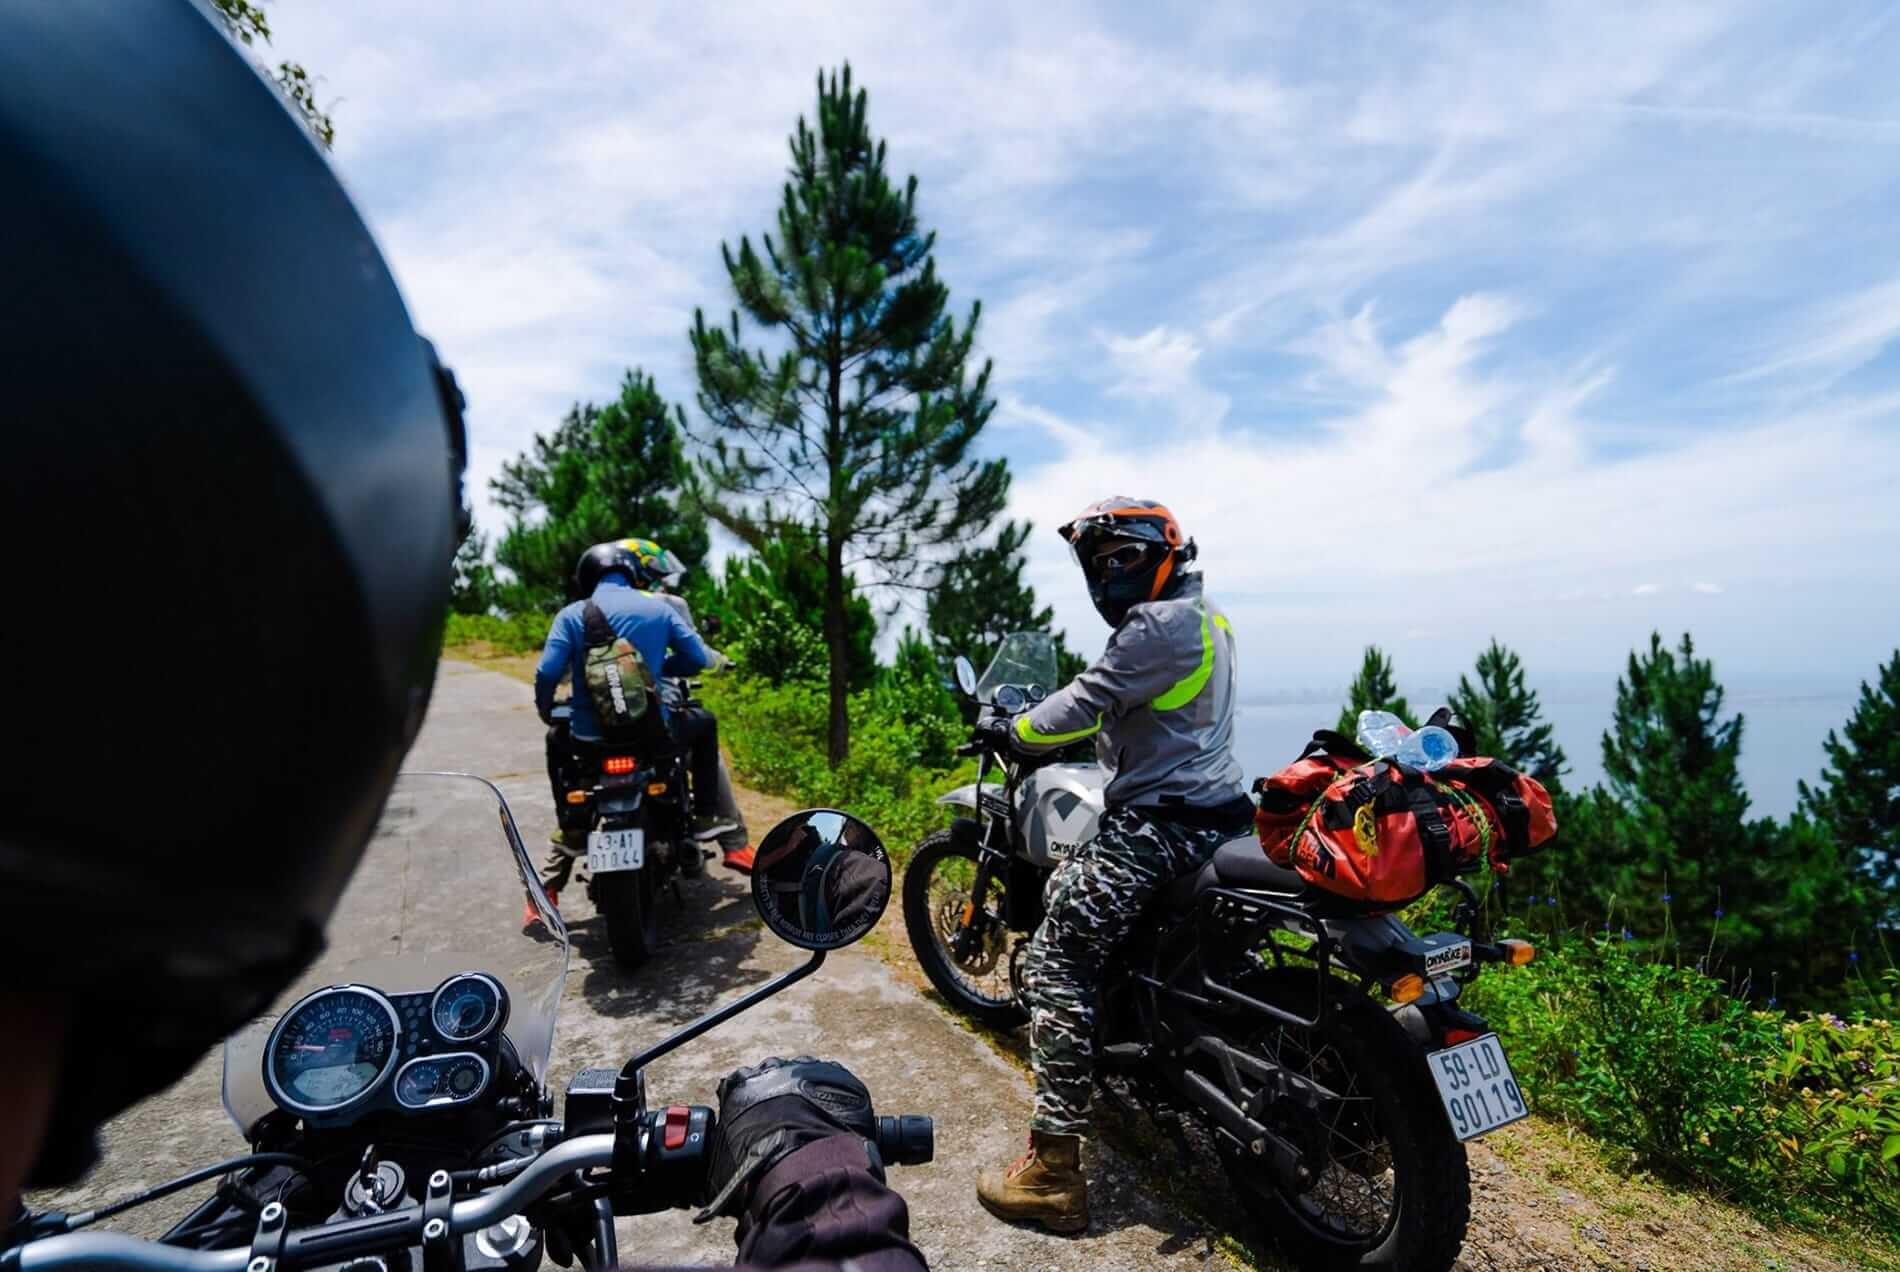 Stop over while doing motorbike tours in Hoi An